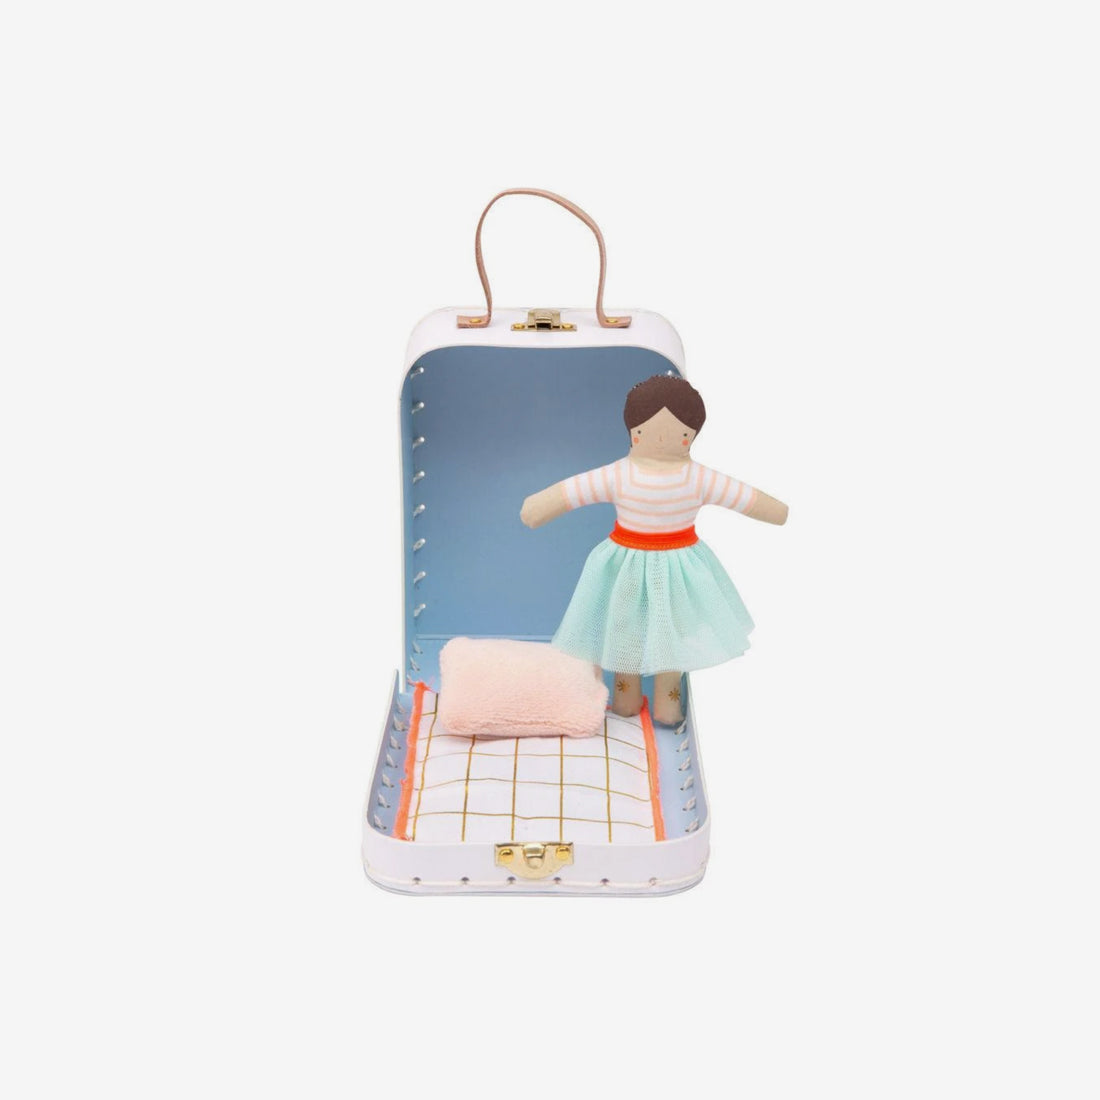 Mini Suitcase House & Doll - Lila